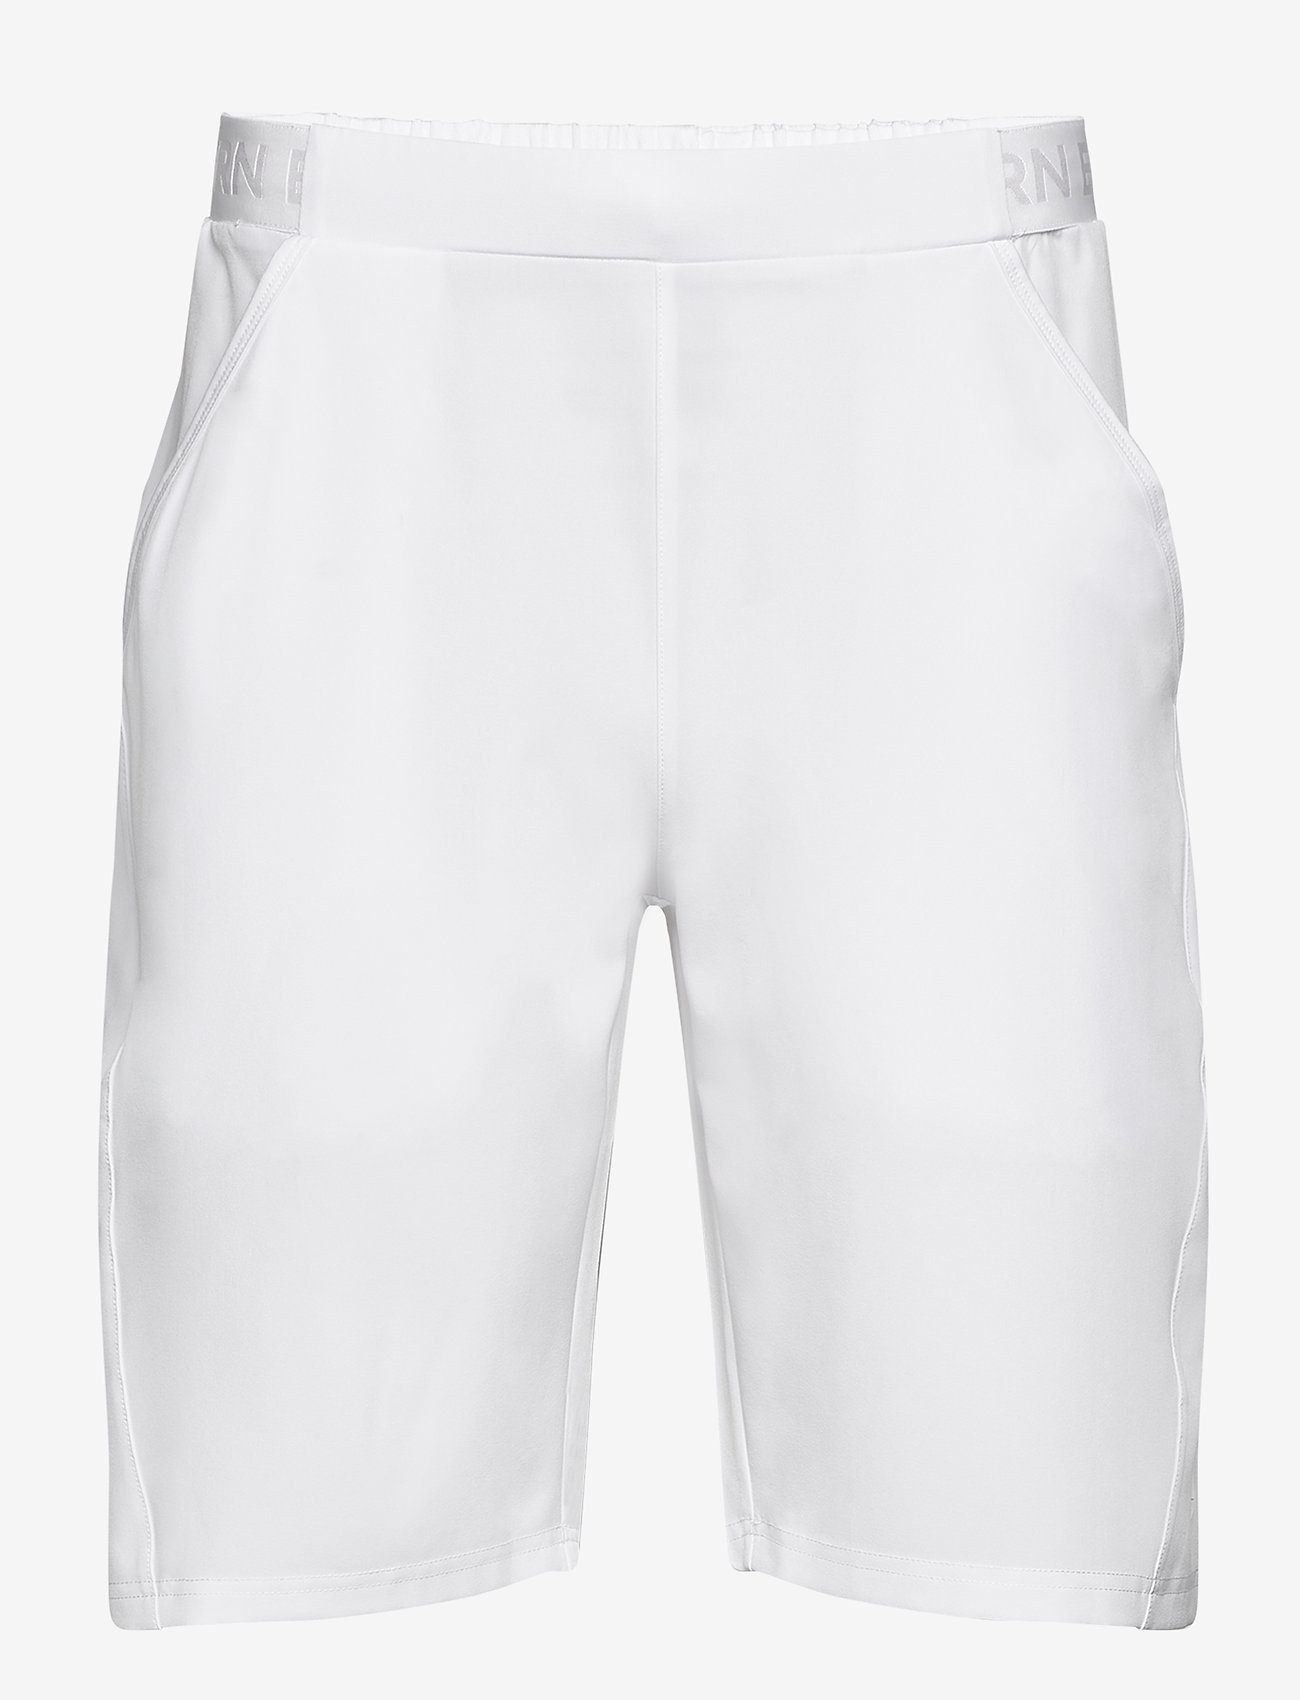 Björn Borg - SHORTS TARIK TARIK - casual shorts - brilliant white - 0